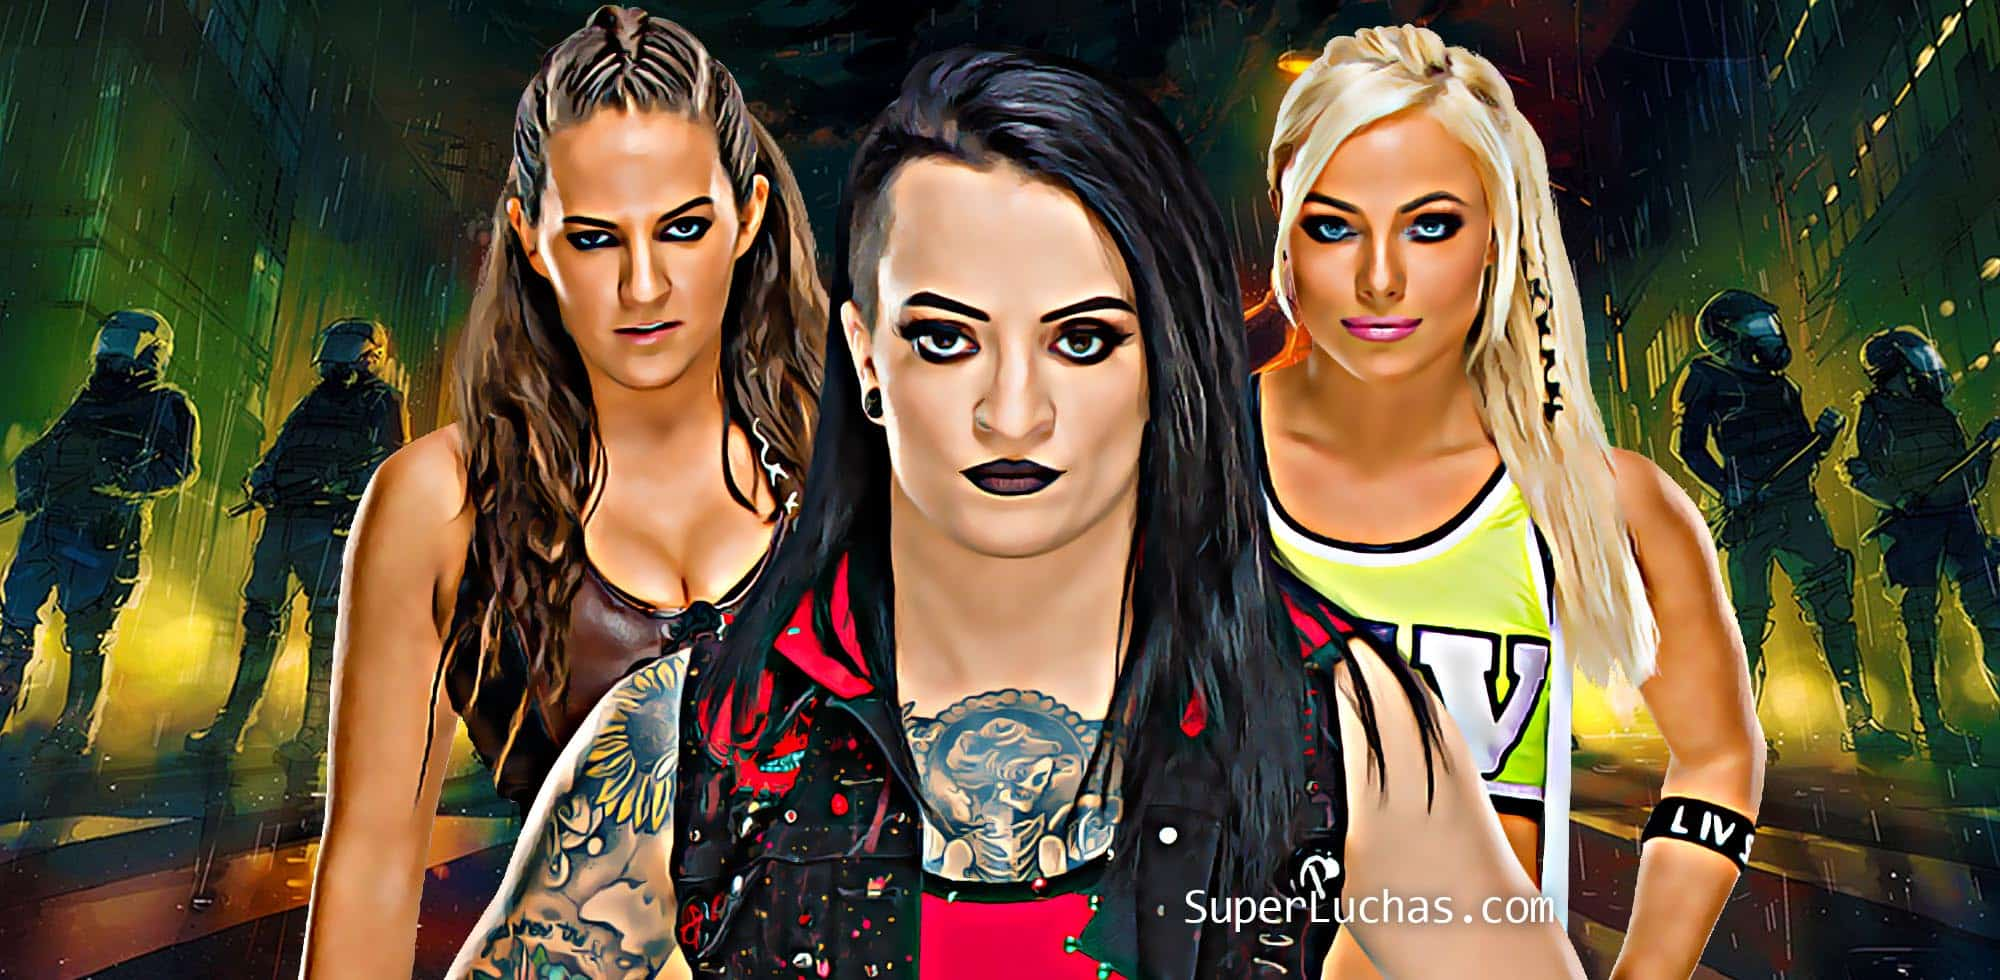 Ruby Riott, Sarah Logan Liv Morgan